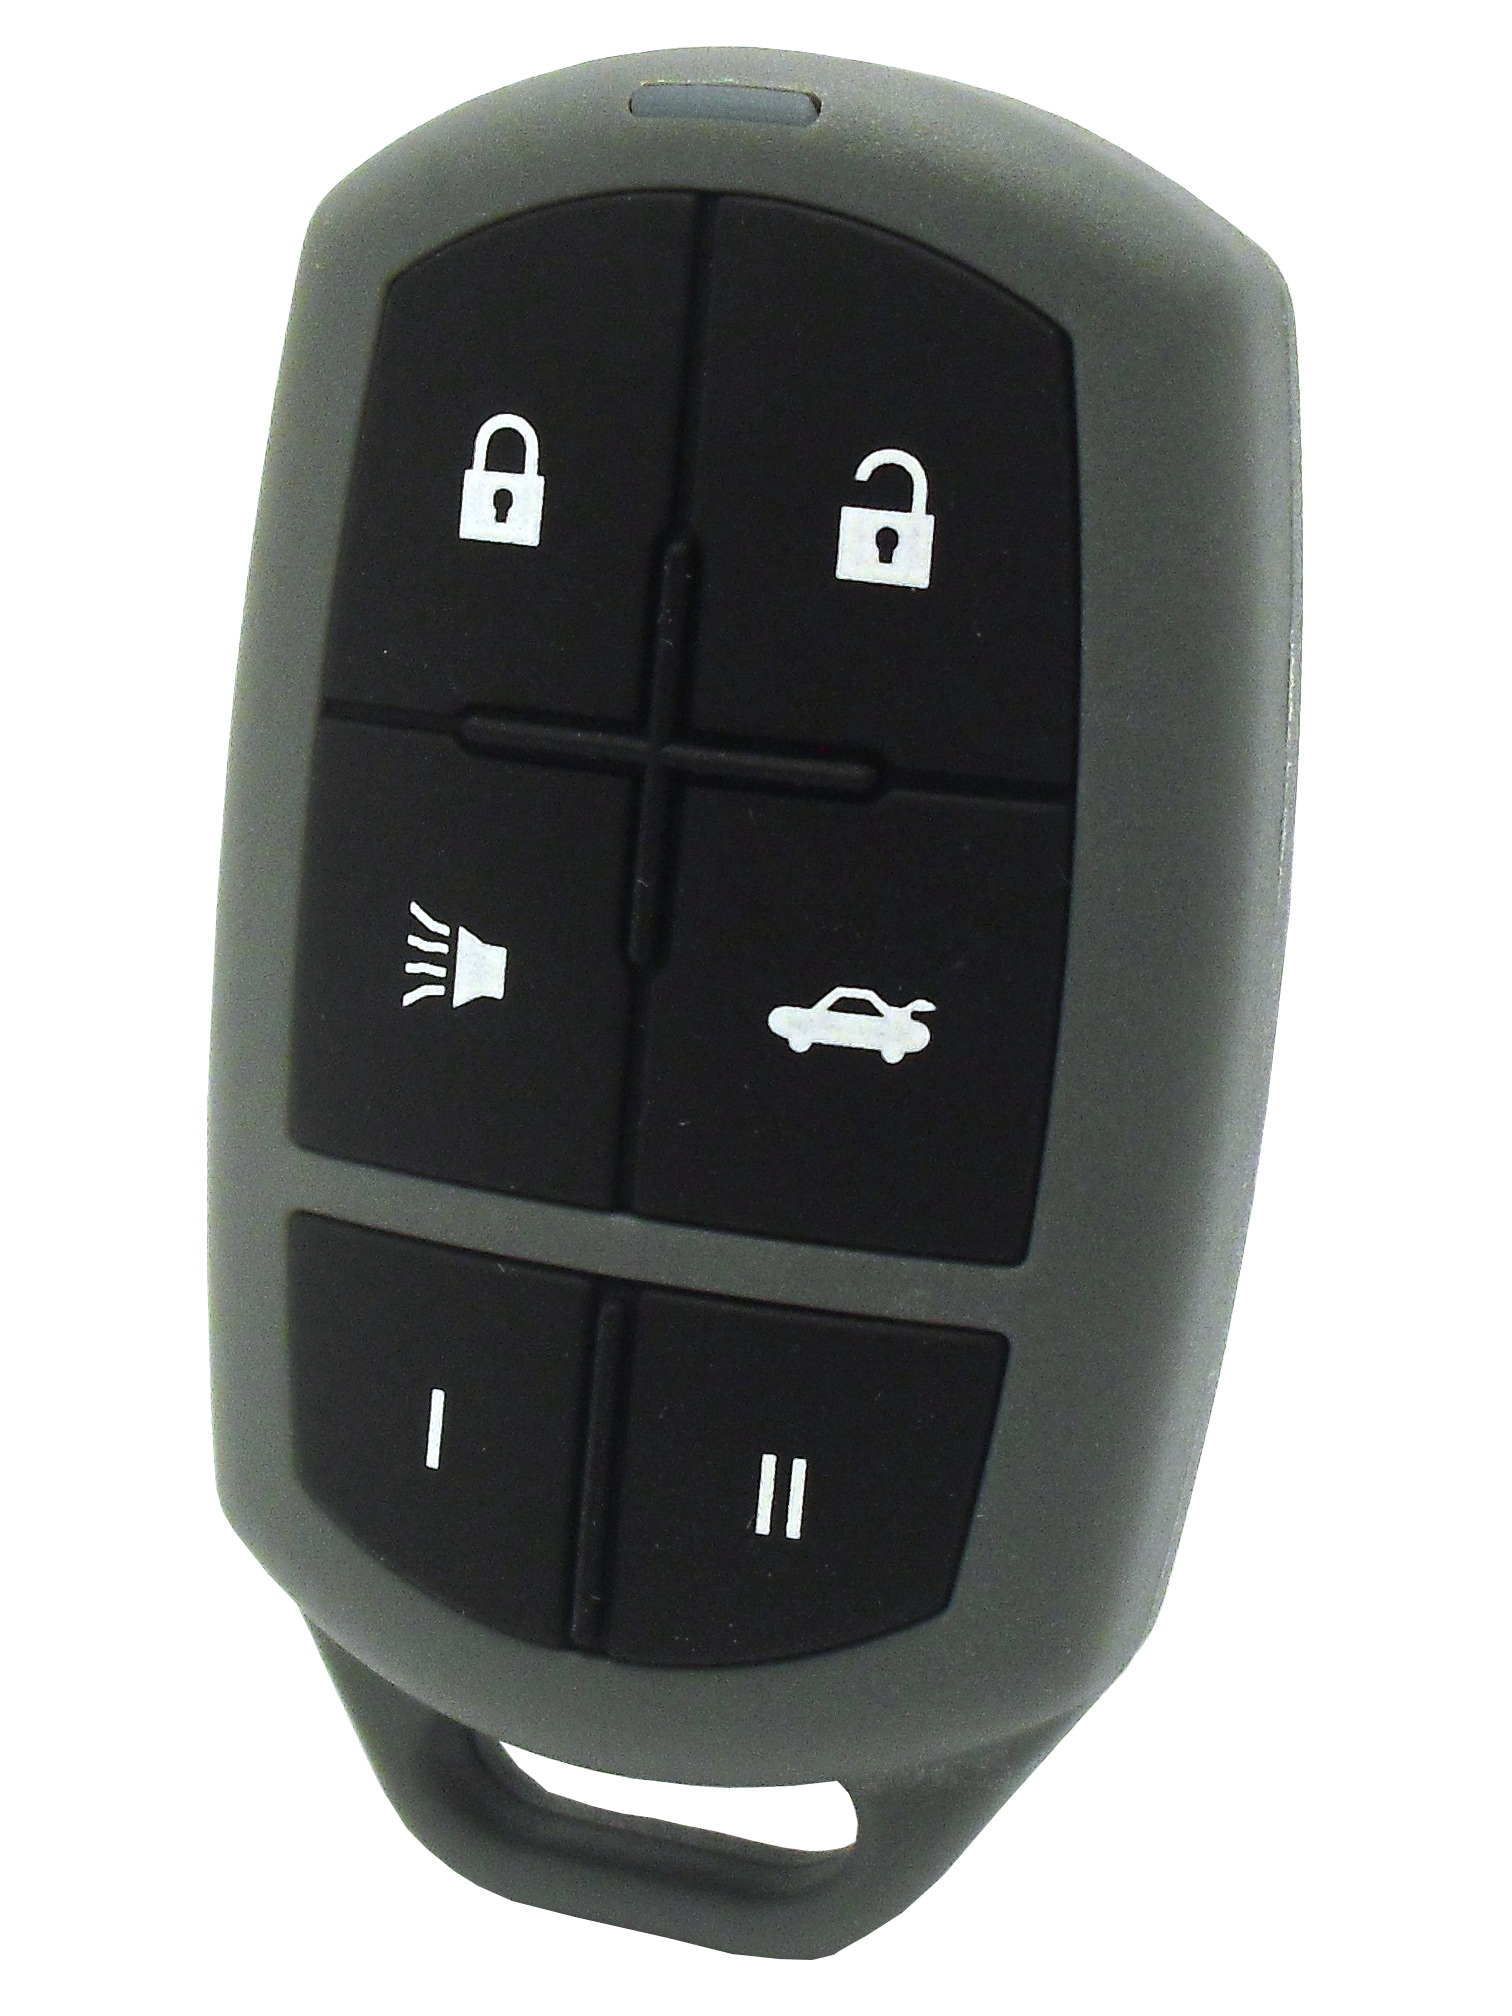 iKeyless Brand Remote Keyless Entry - 2 Button Models with Dealer Installed System